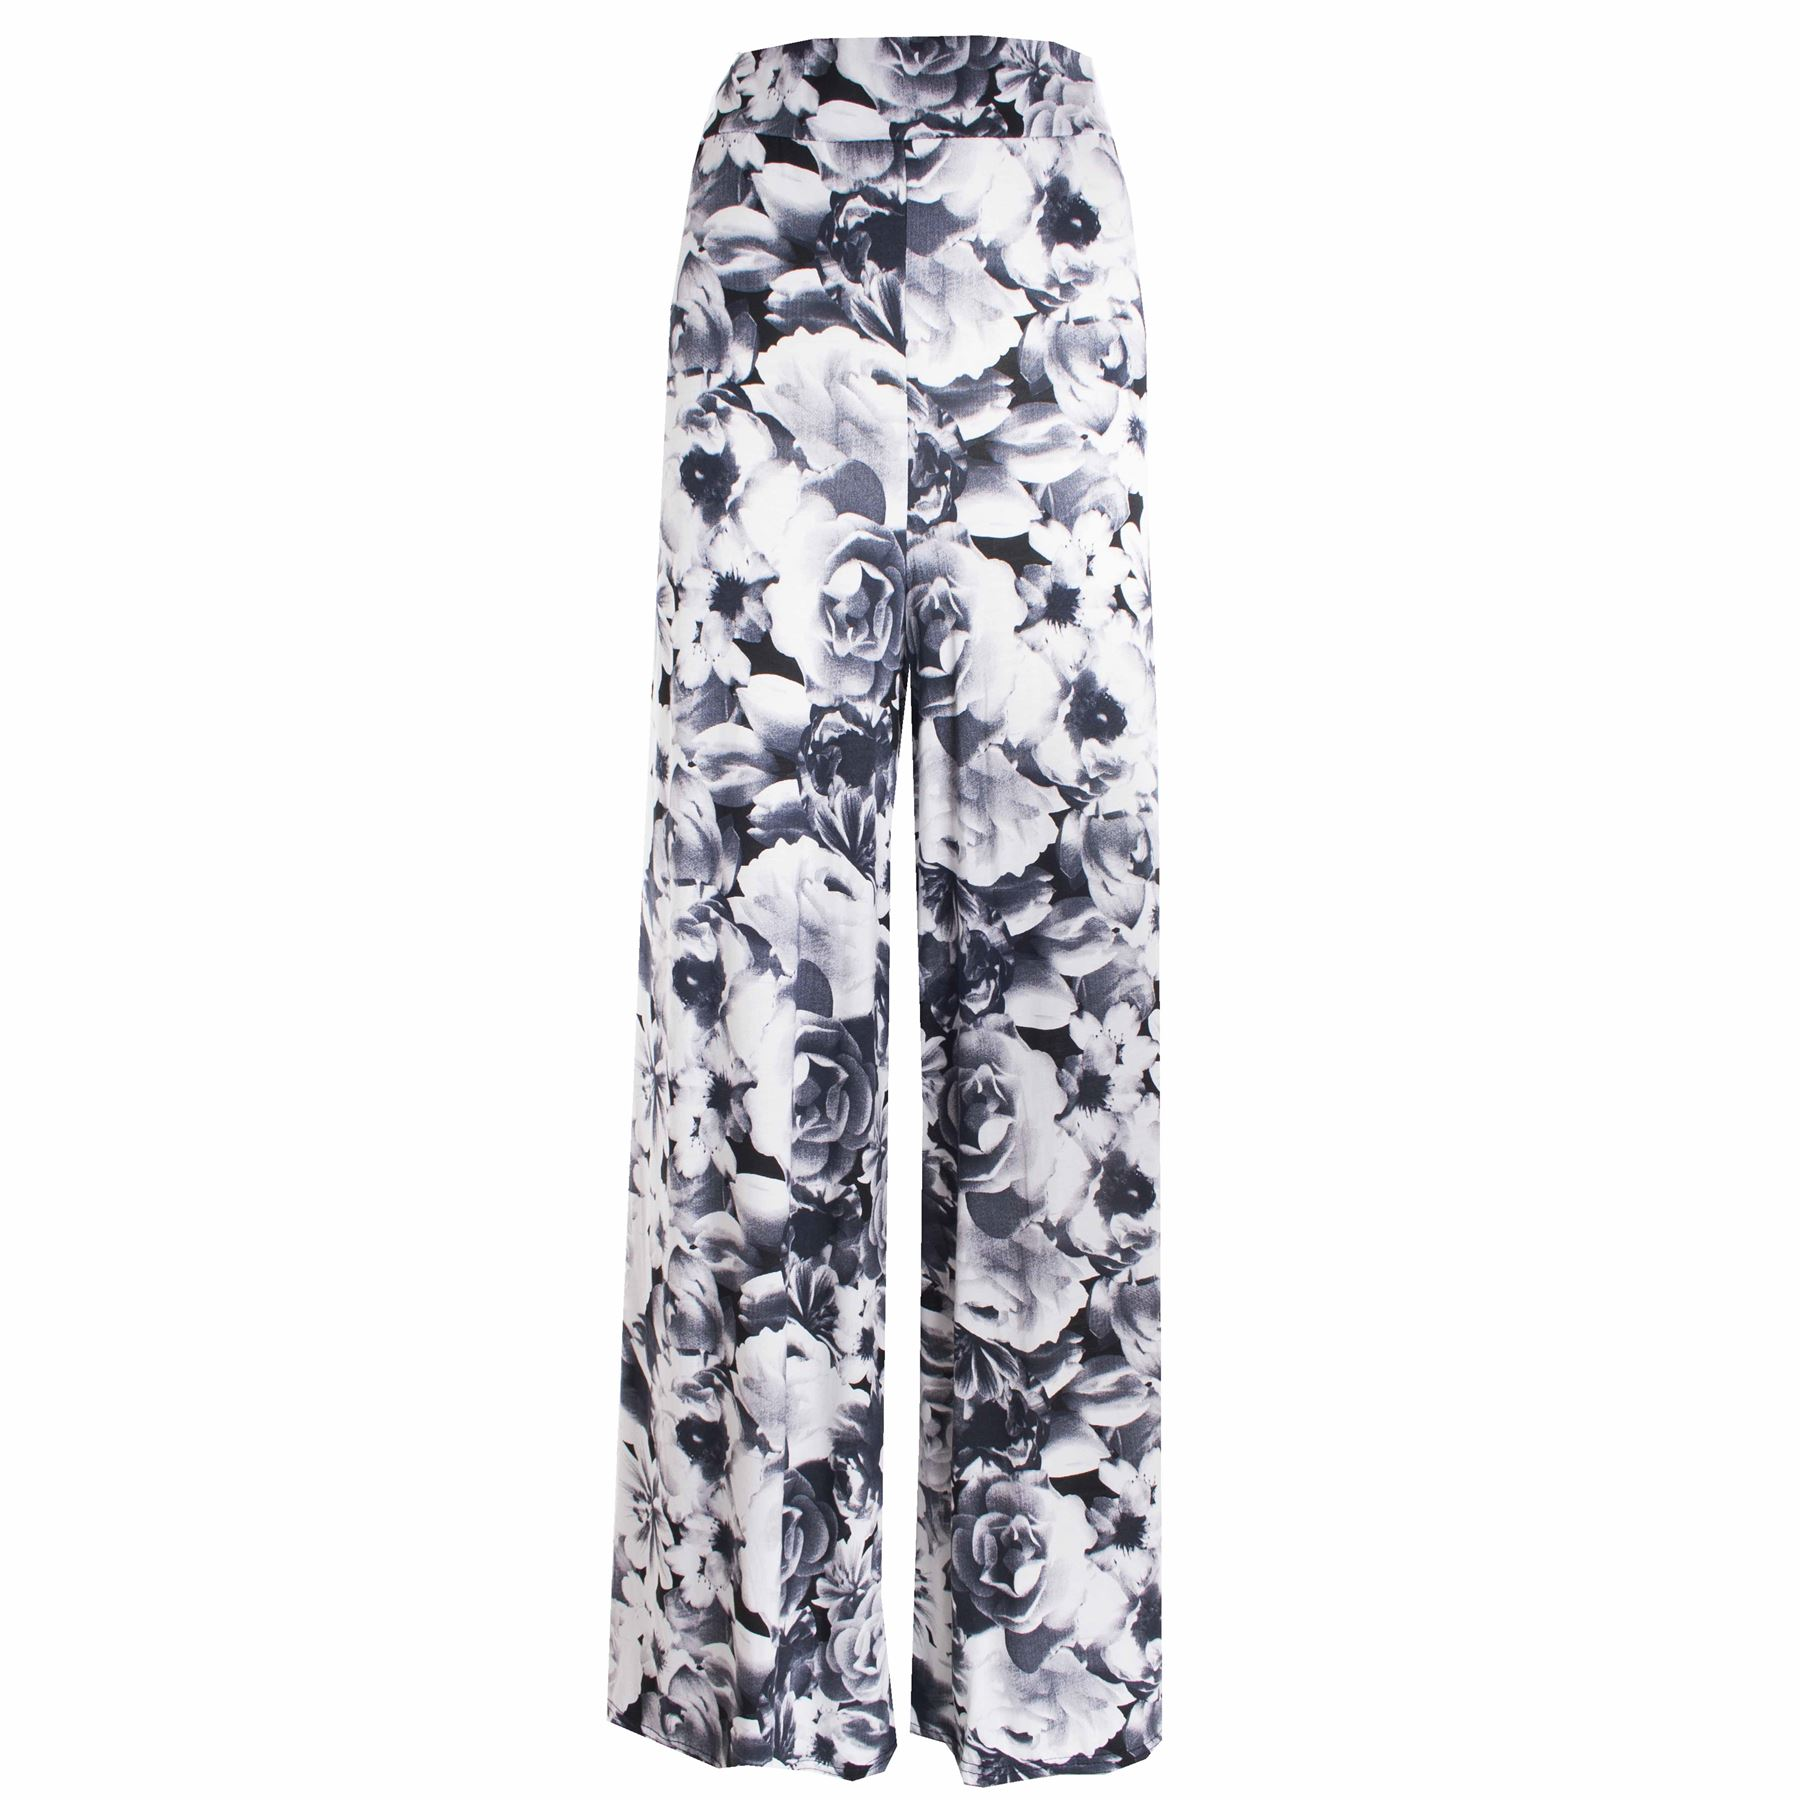 Printed Pants. Printed pants are in the spotlight this season in styles from today's cutting-edge designers. From flowing floral prints to sophisticated stripes, women's printed pants are .